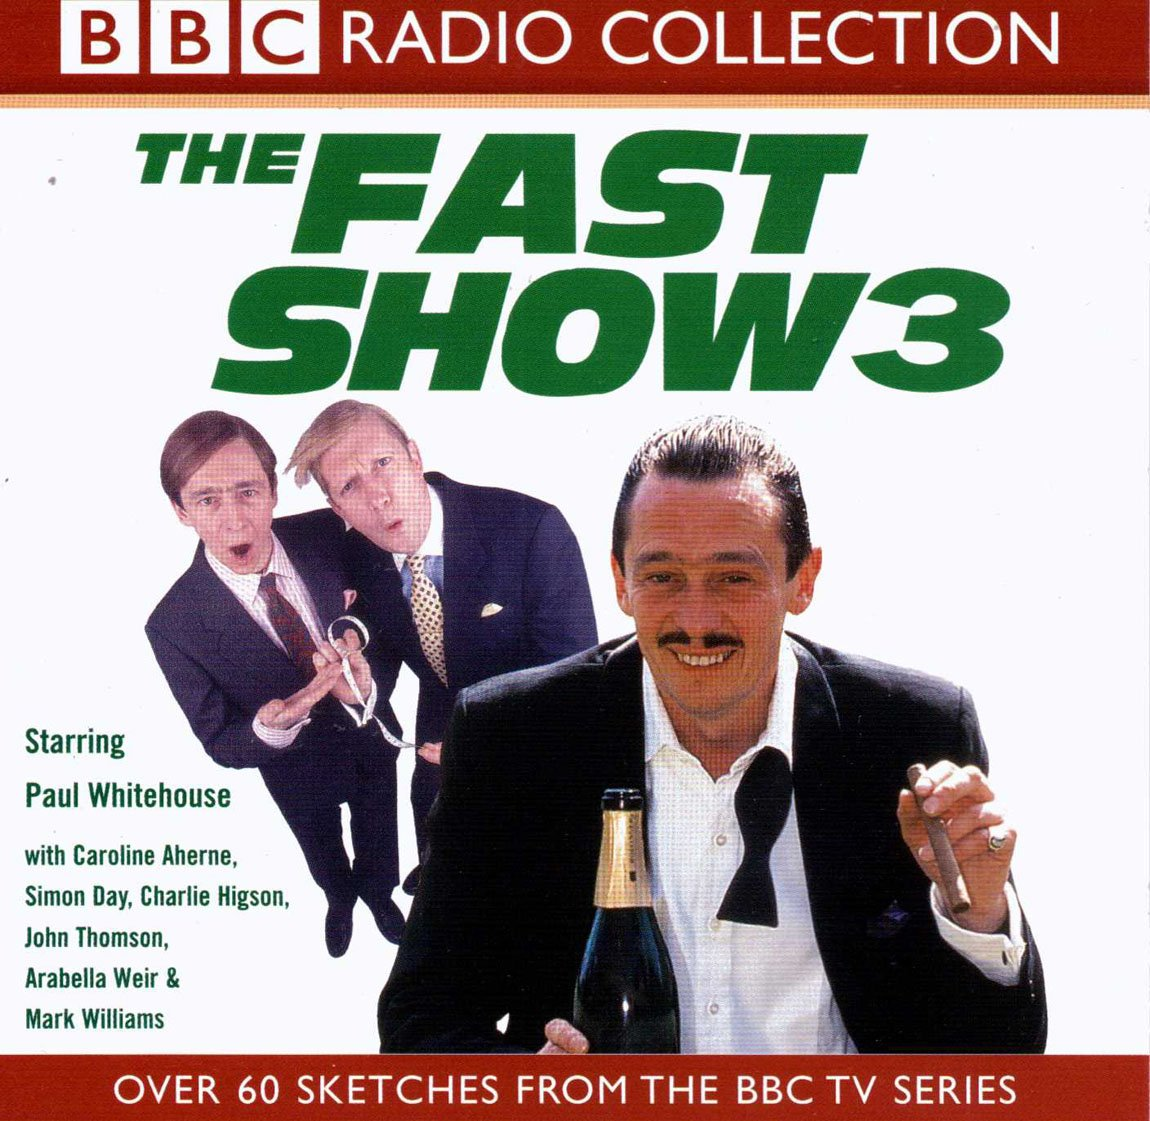 The Fast Show Starring Paul Whitehouse Cast Bbc Radio Collection No 3 Whitehouse Paul Aherne Caroline Day Simon Higson Charlie Thomson John Weir Arabella Williams Mark 9780563558705 Amazon Com Books